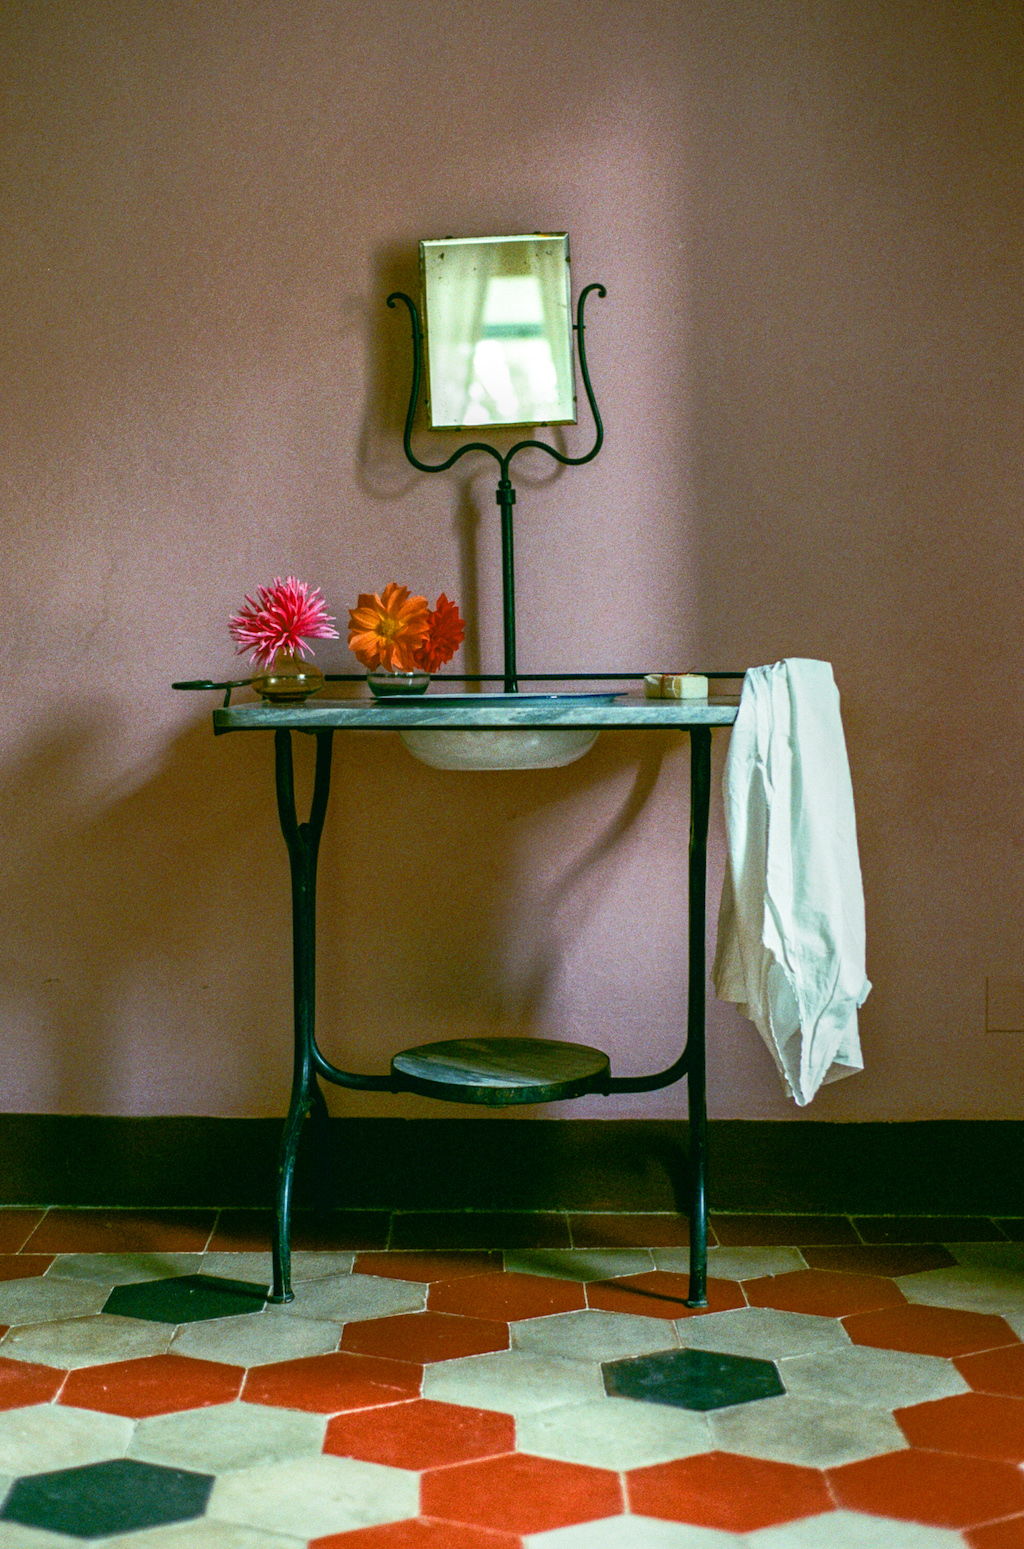 Rooms_and_bathrooms-25.jpg